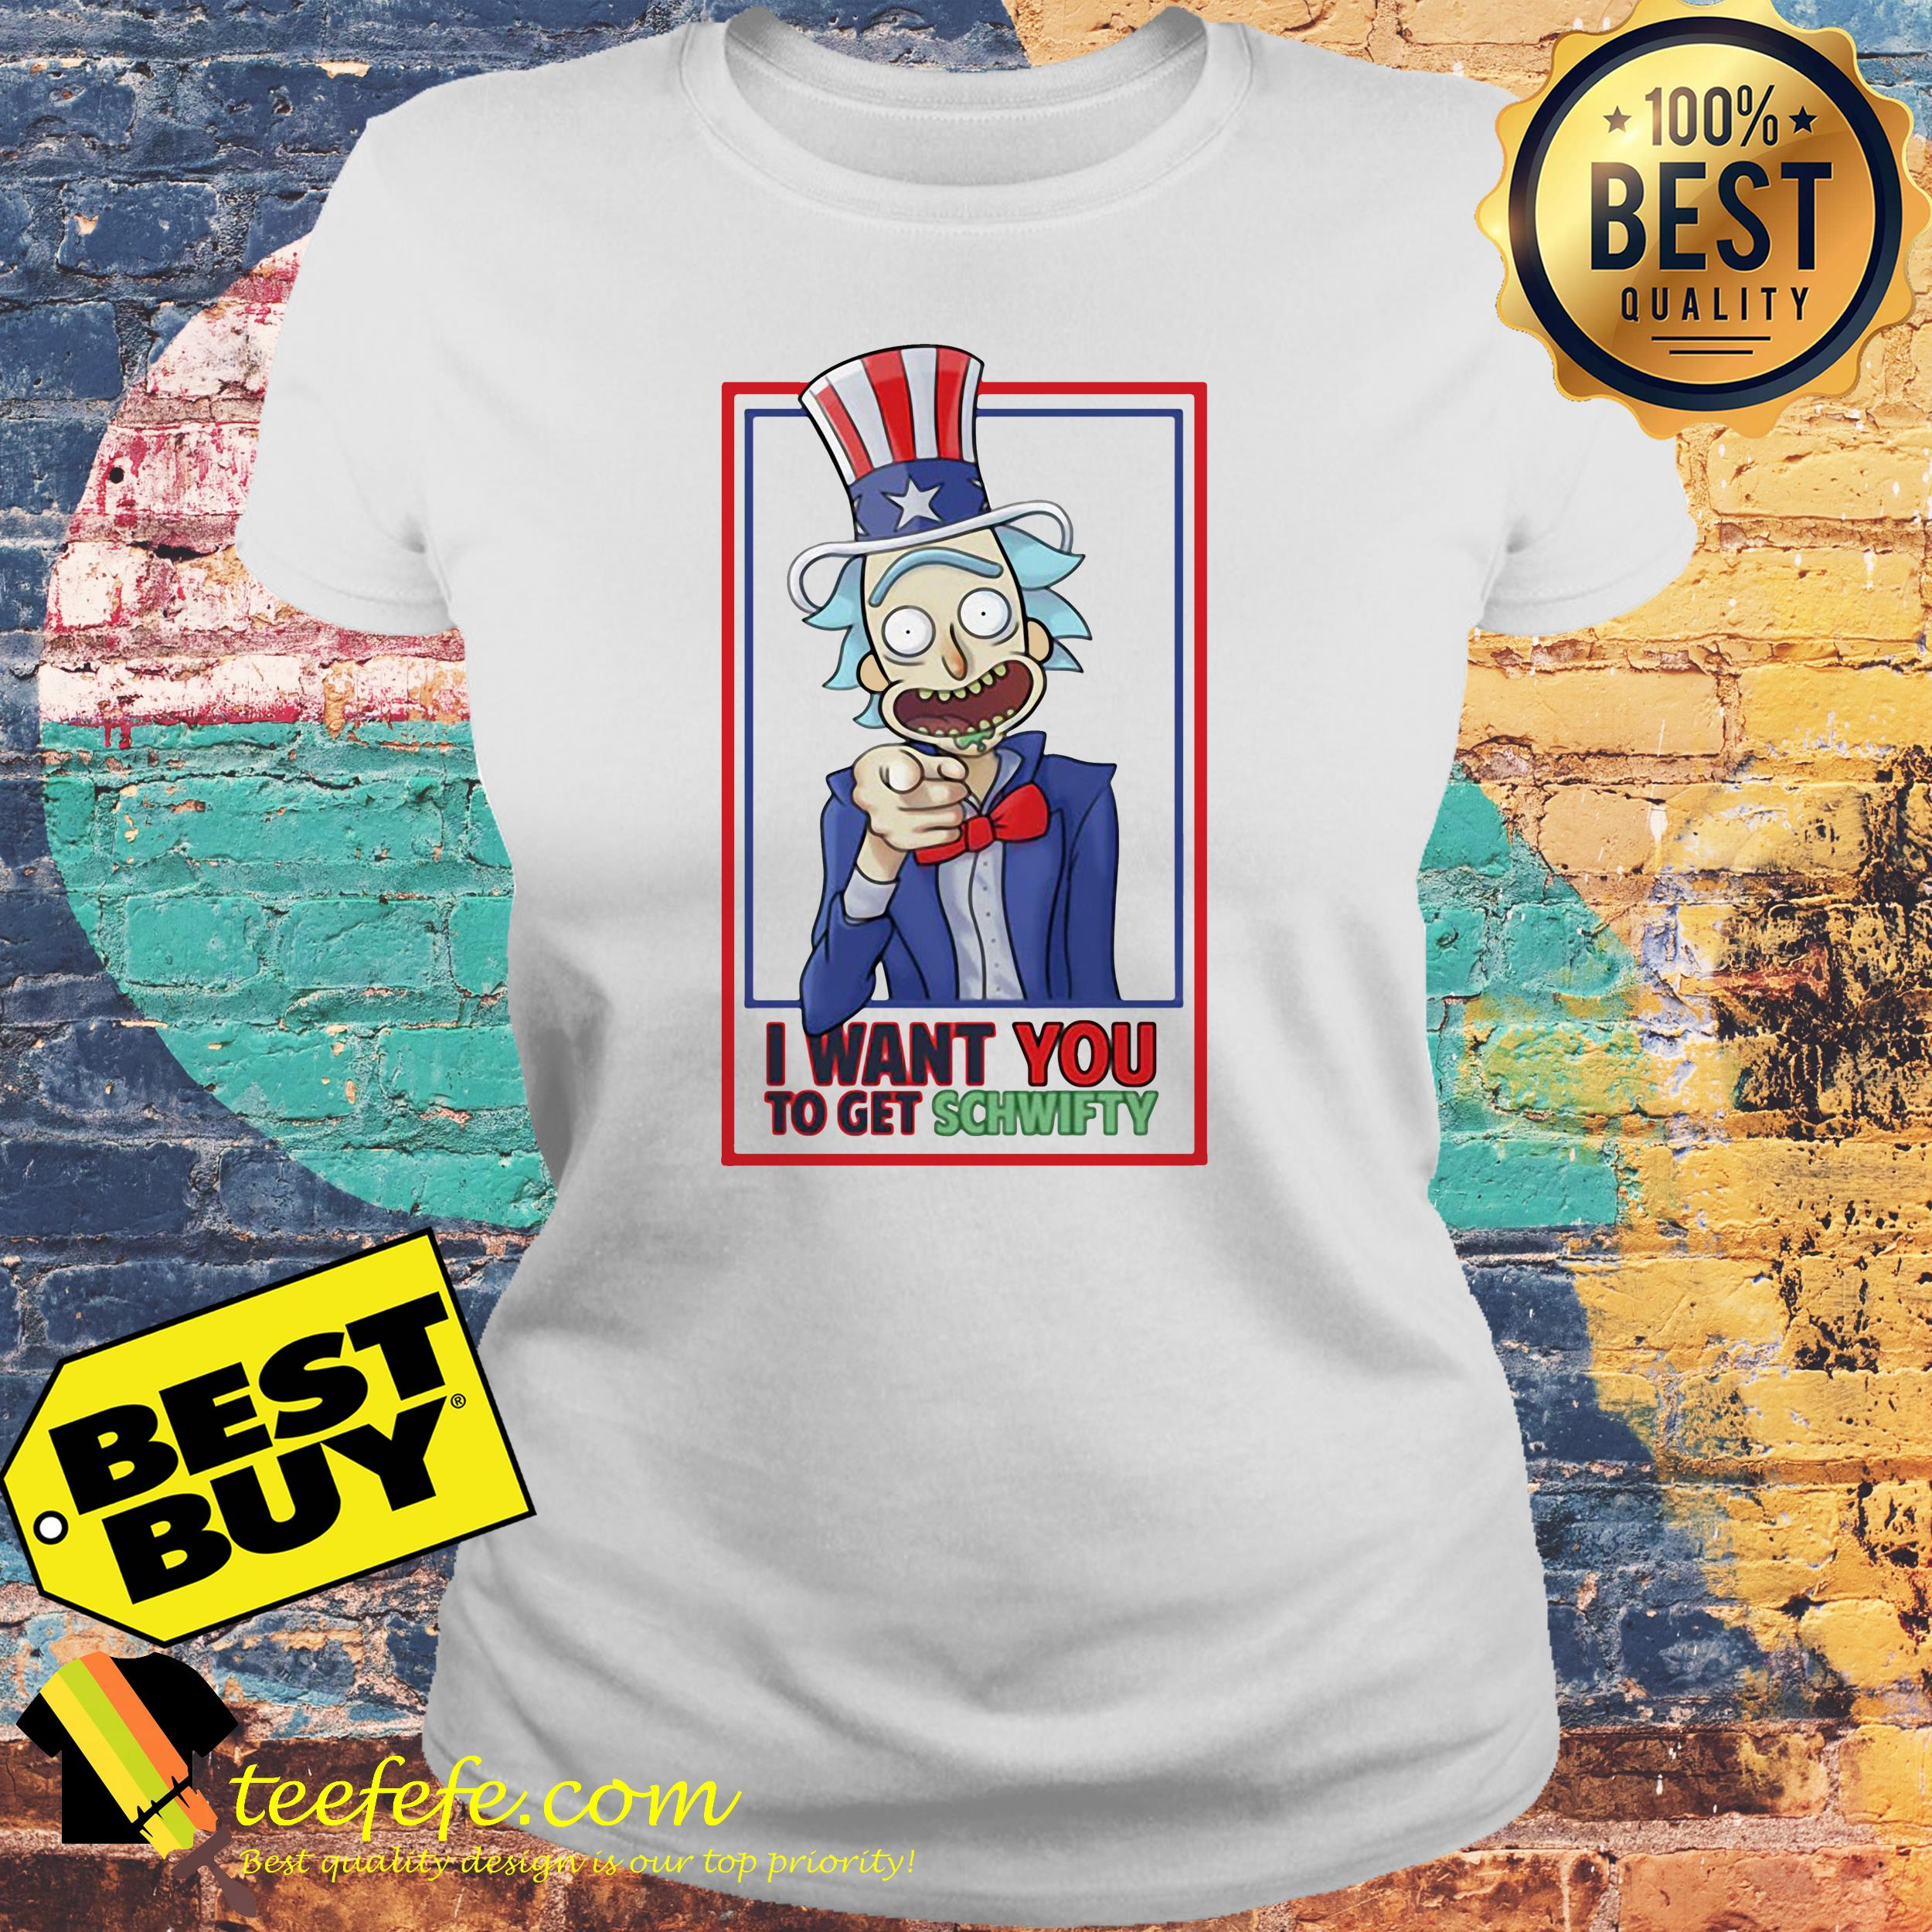 Rick Uncle I Want You To Get Schwifty ladies tee